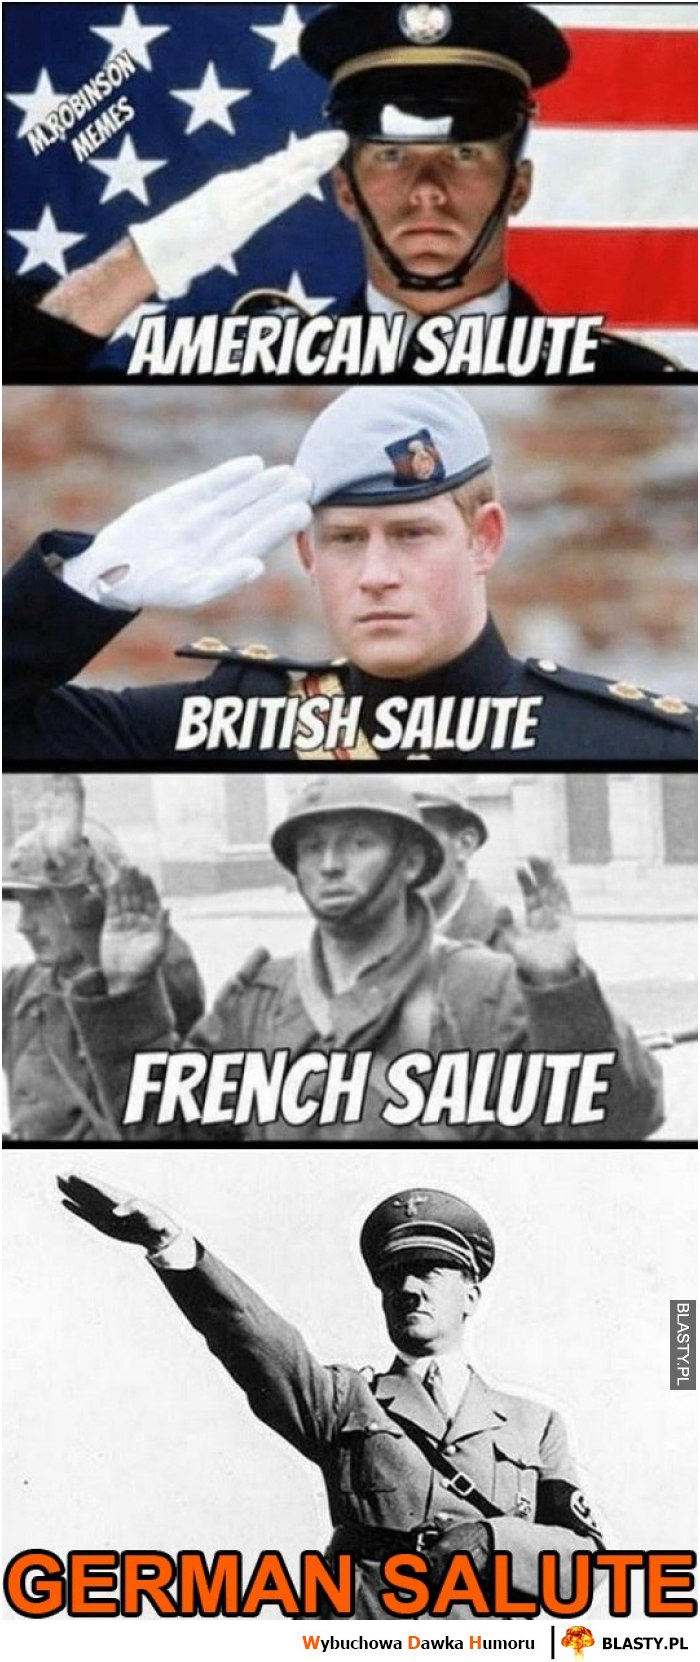 American Salute, british salute, french salute, german salute